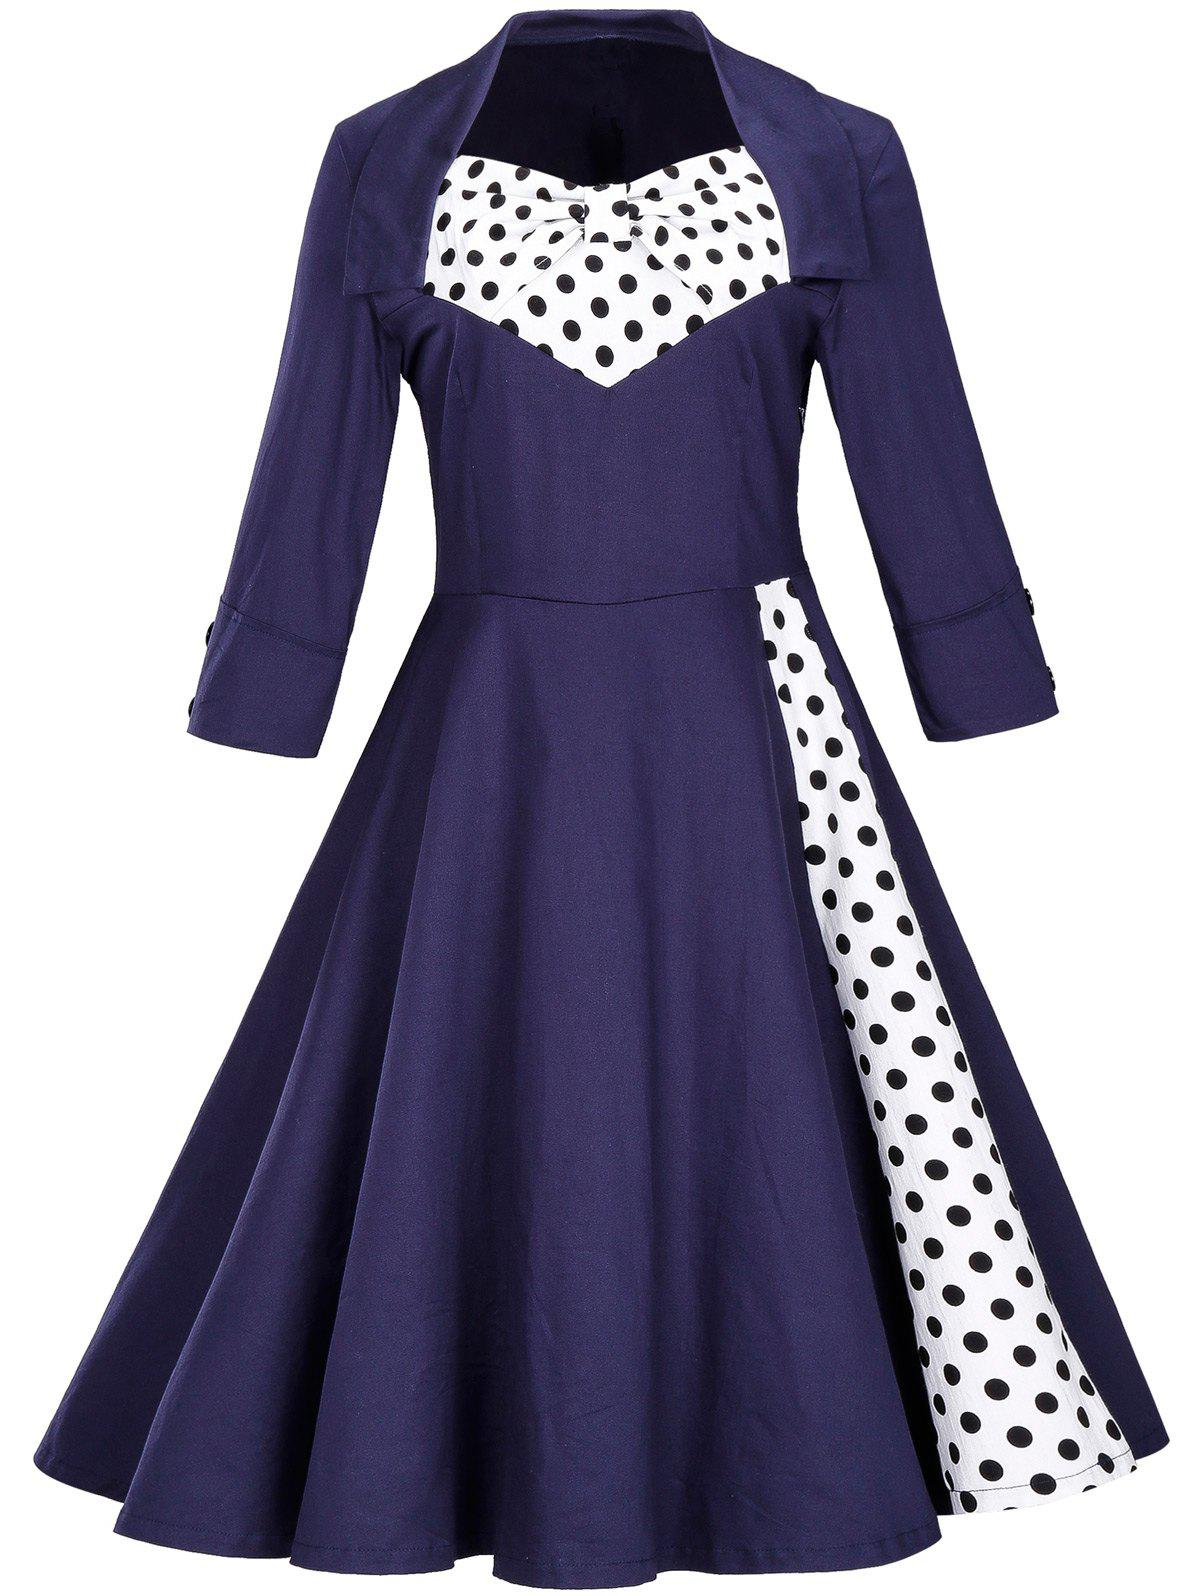 Vintage Polka Dot Bowknot Swing Fit and Flare Dress vintage polka dot floral fit and flare dress